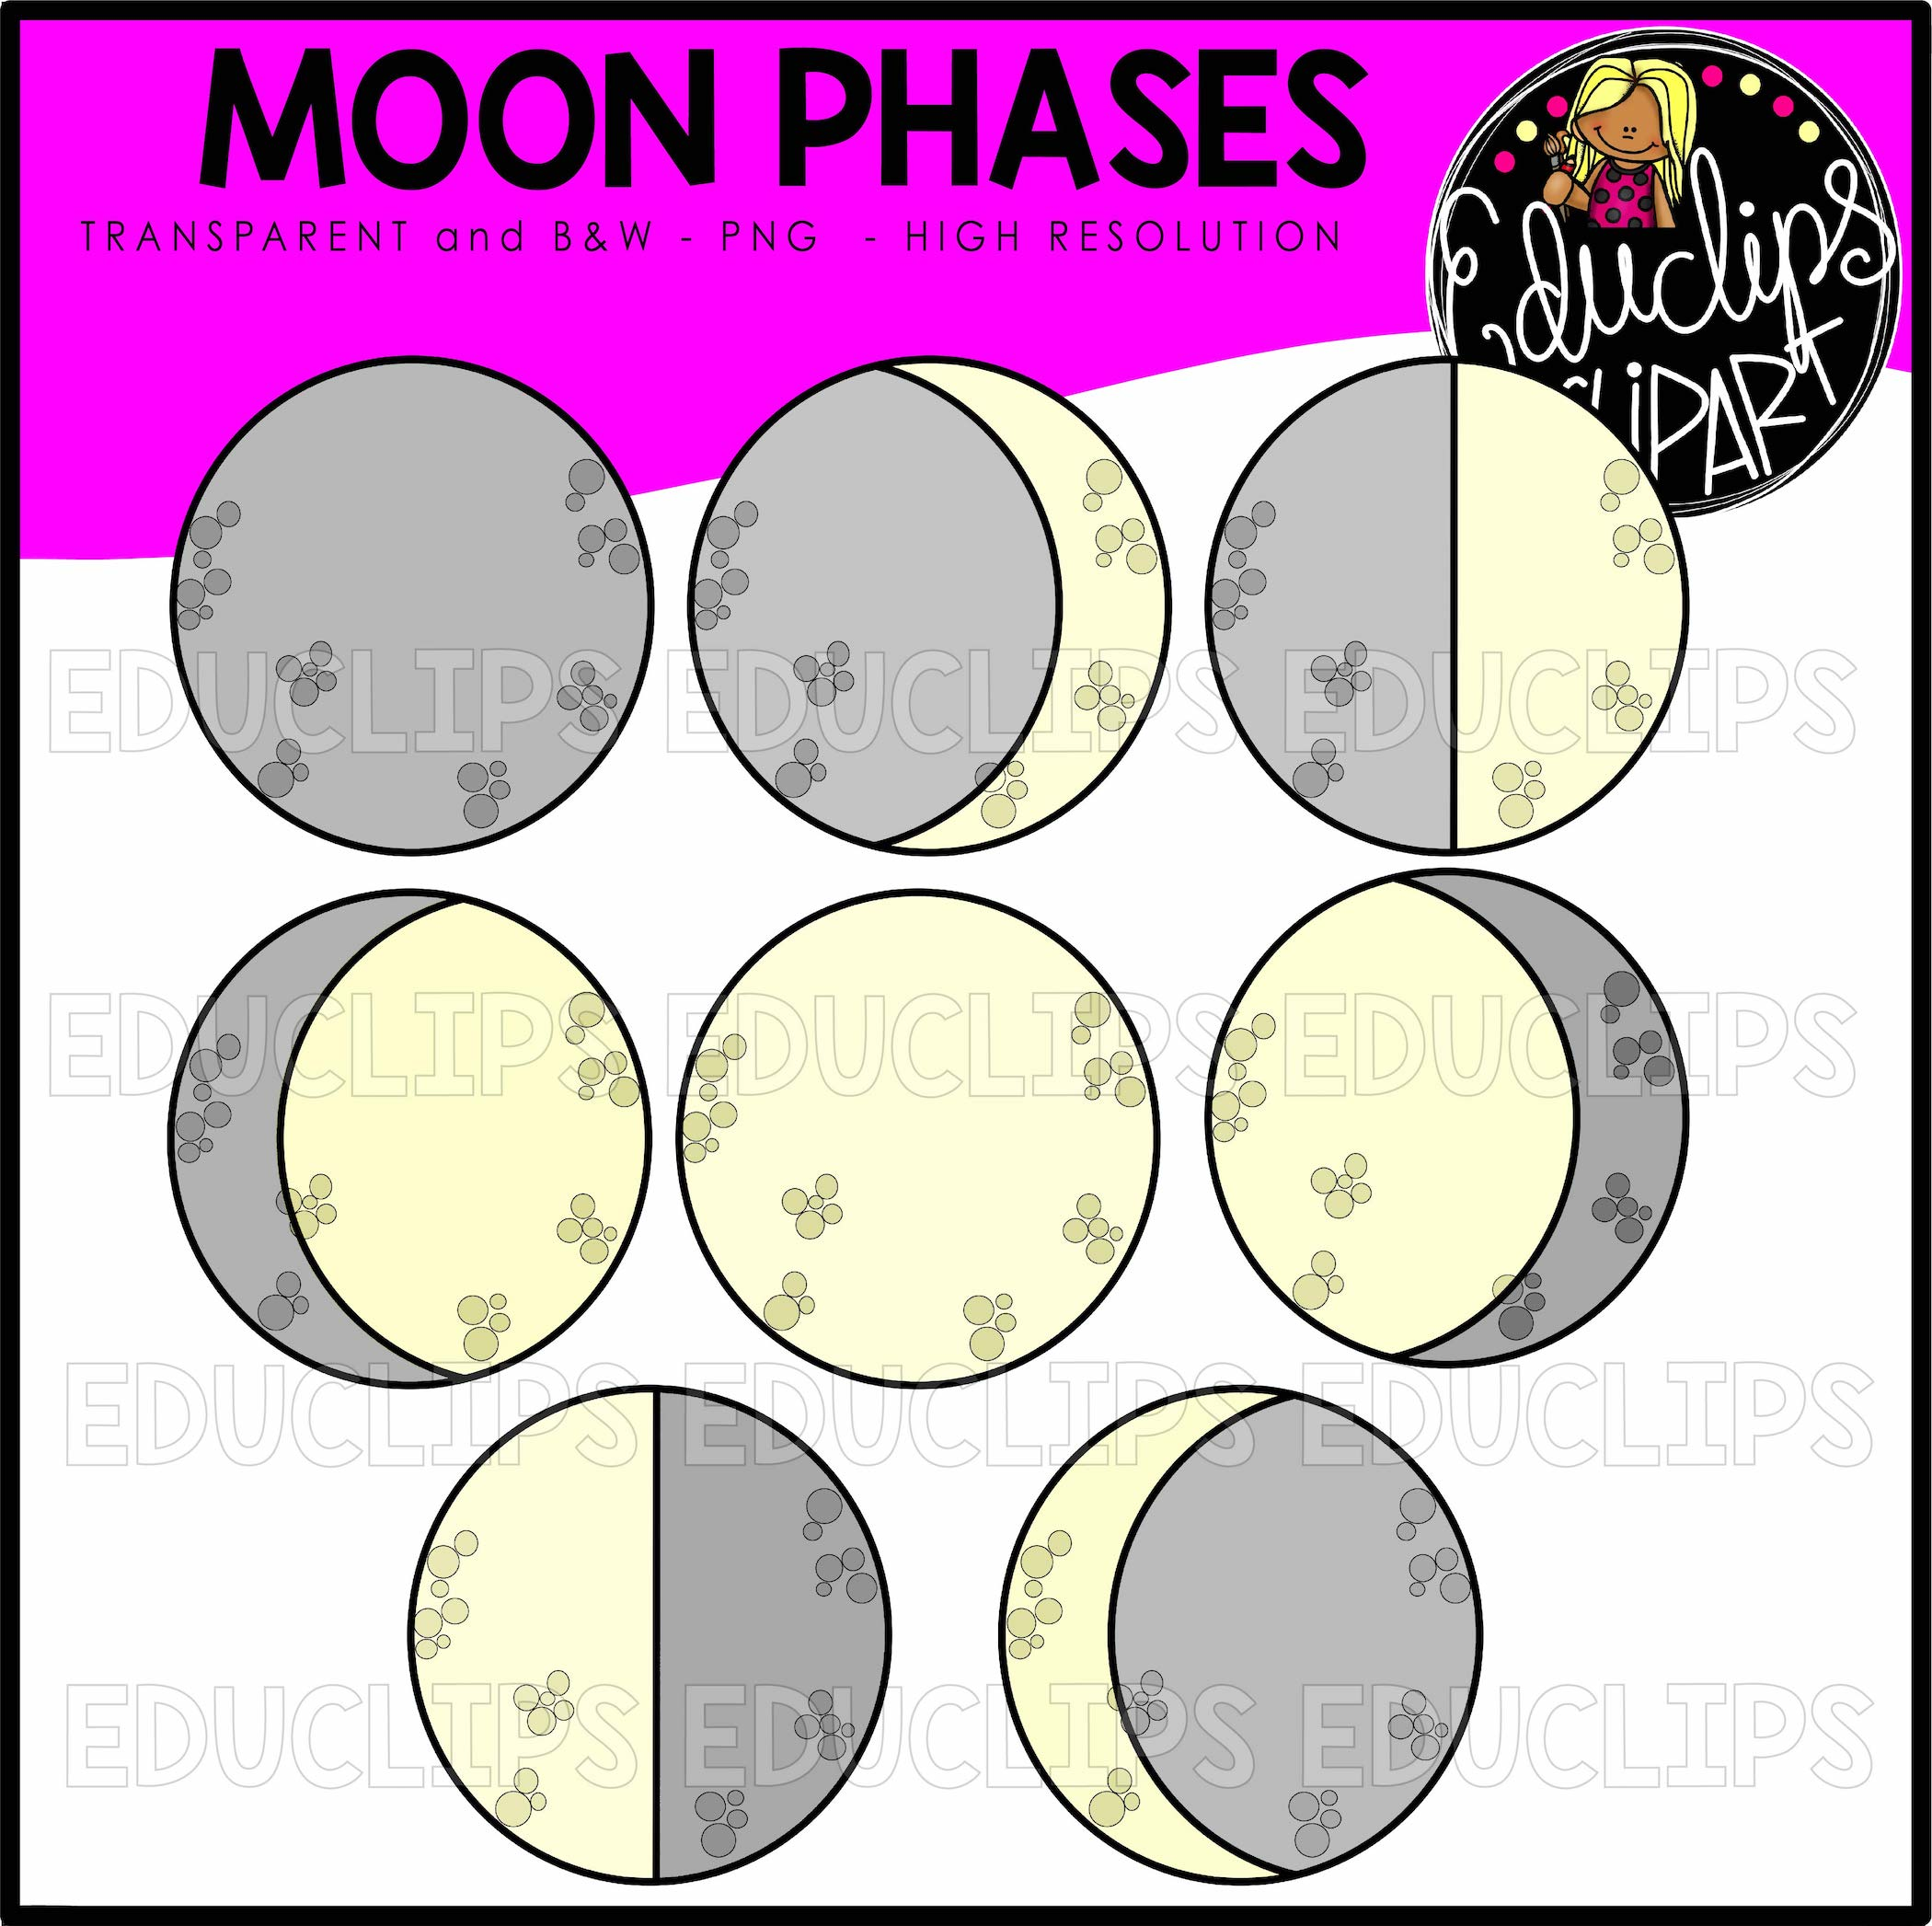 Phases of moon clipart image free stock Moon Phases Clip Art Bundle (Color and B&W) image free stock